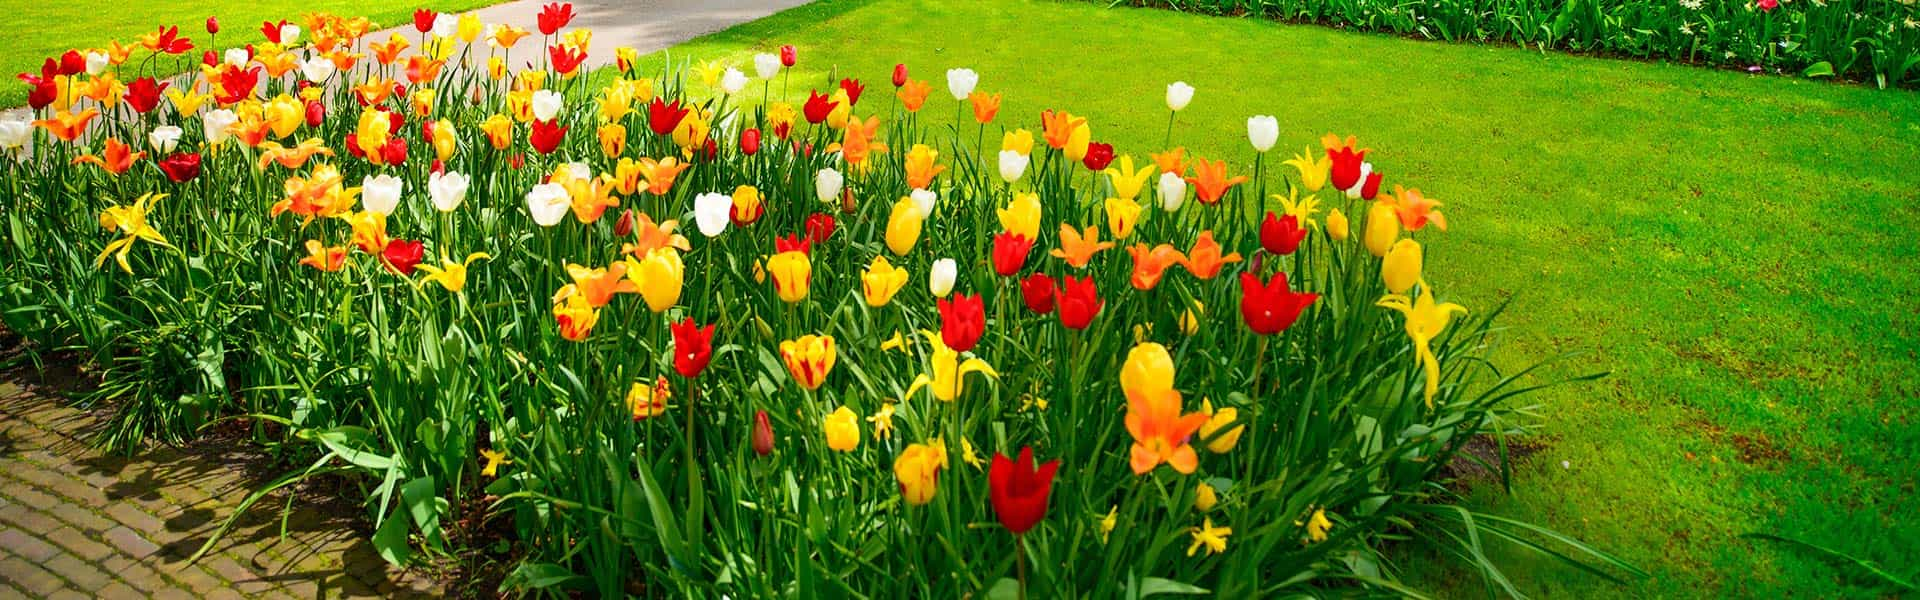 Keep your lawn green and your flowers beautiful!